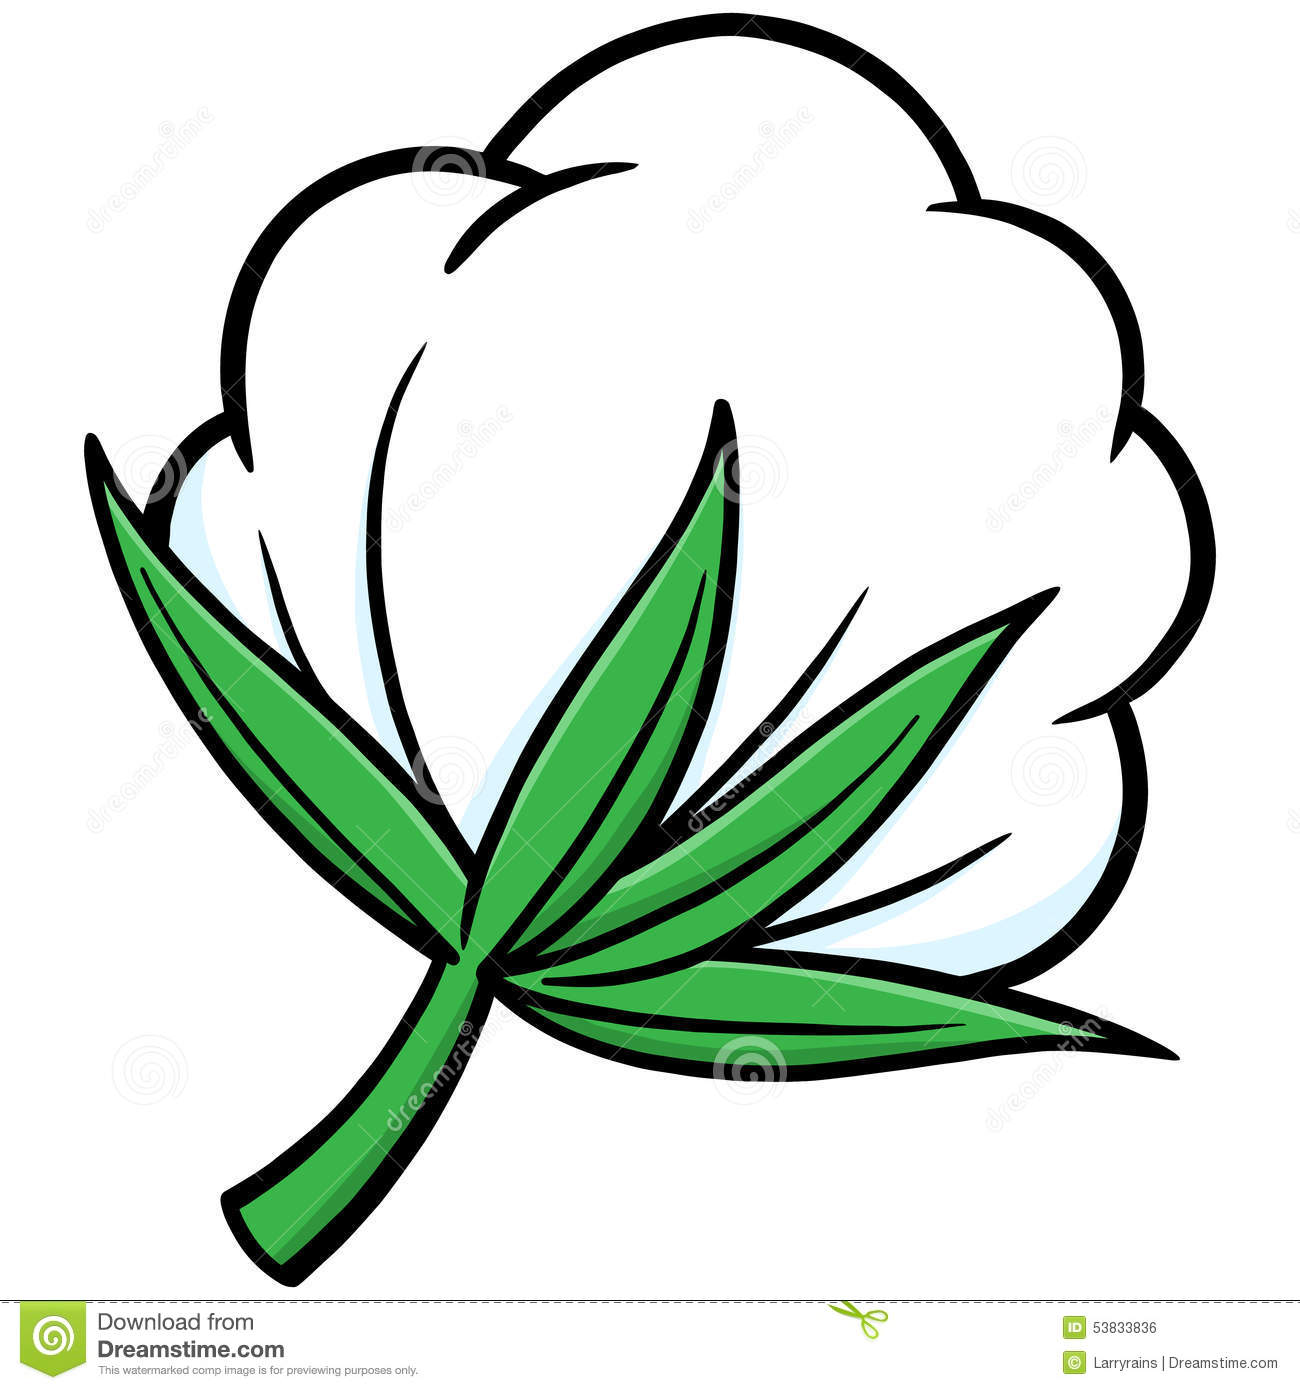 Cotton Stock Vector - Image: 53833836